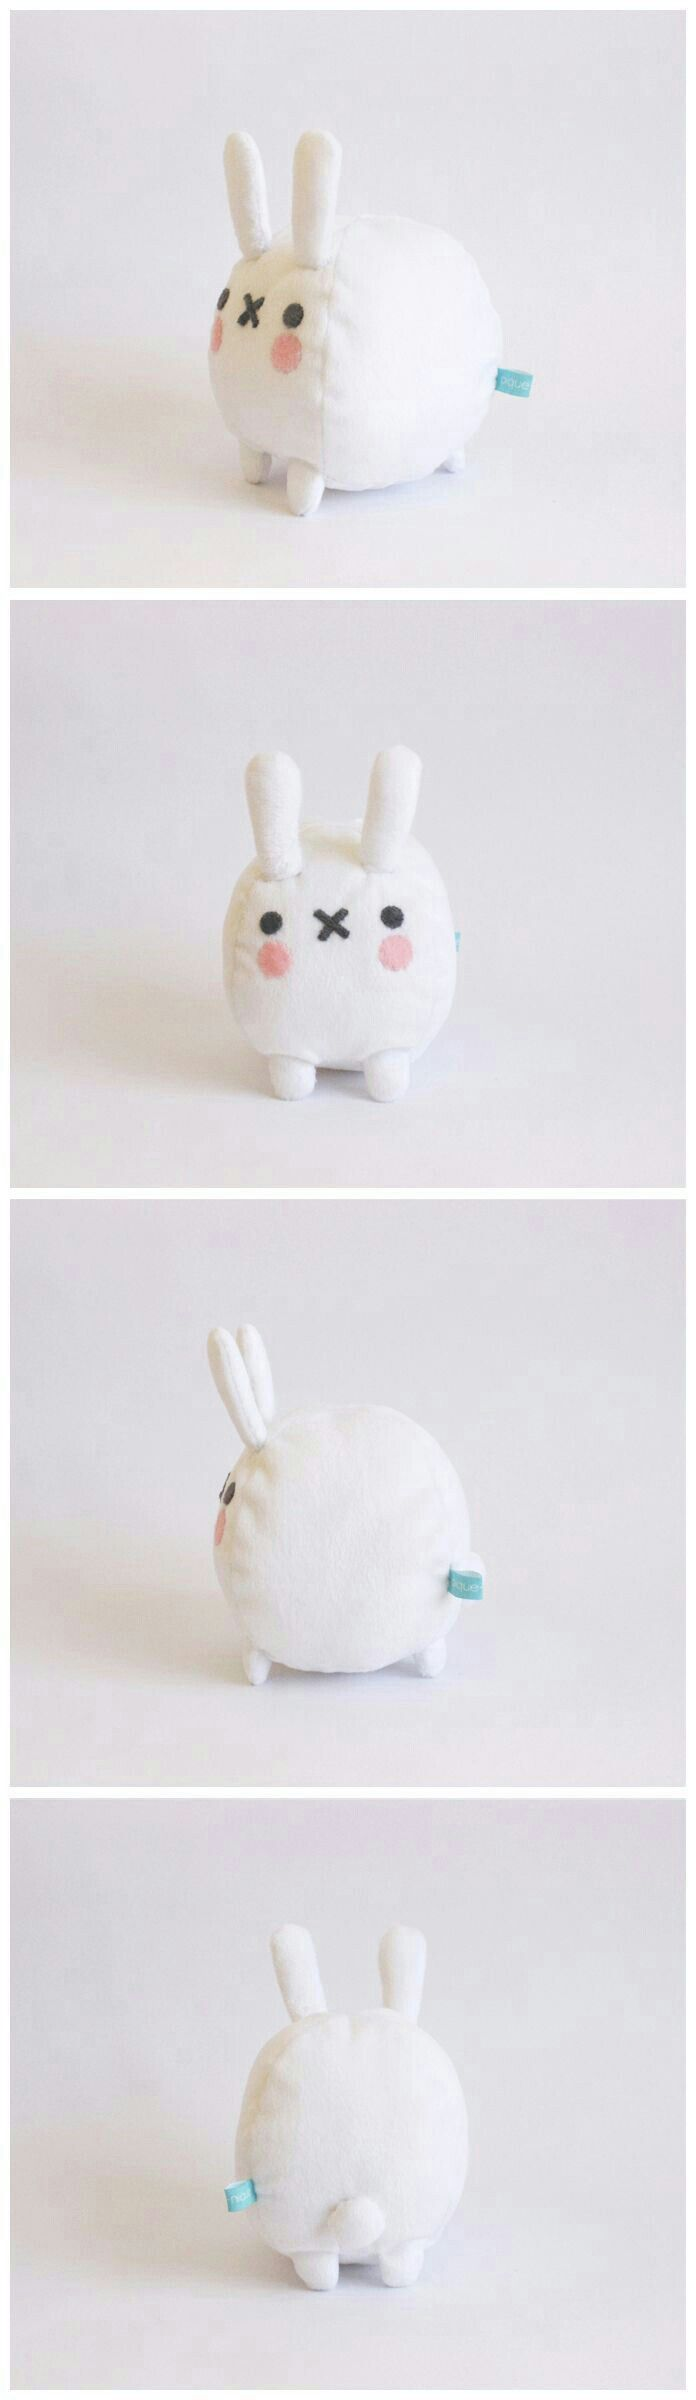 12 best kawaii plushies images on Pinterest | Plüschtiere, Niedlich ...